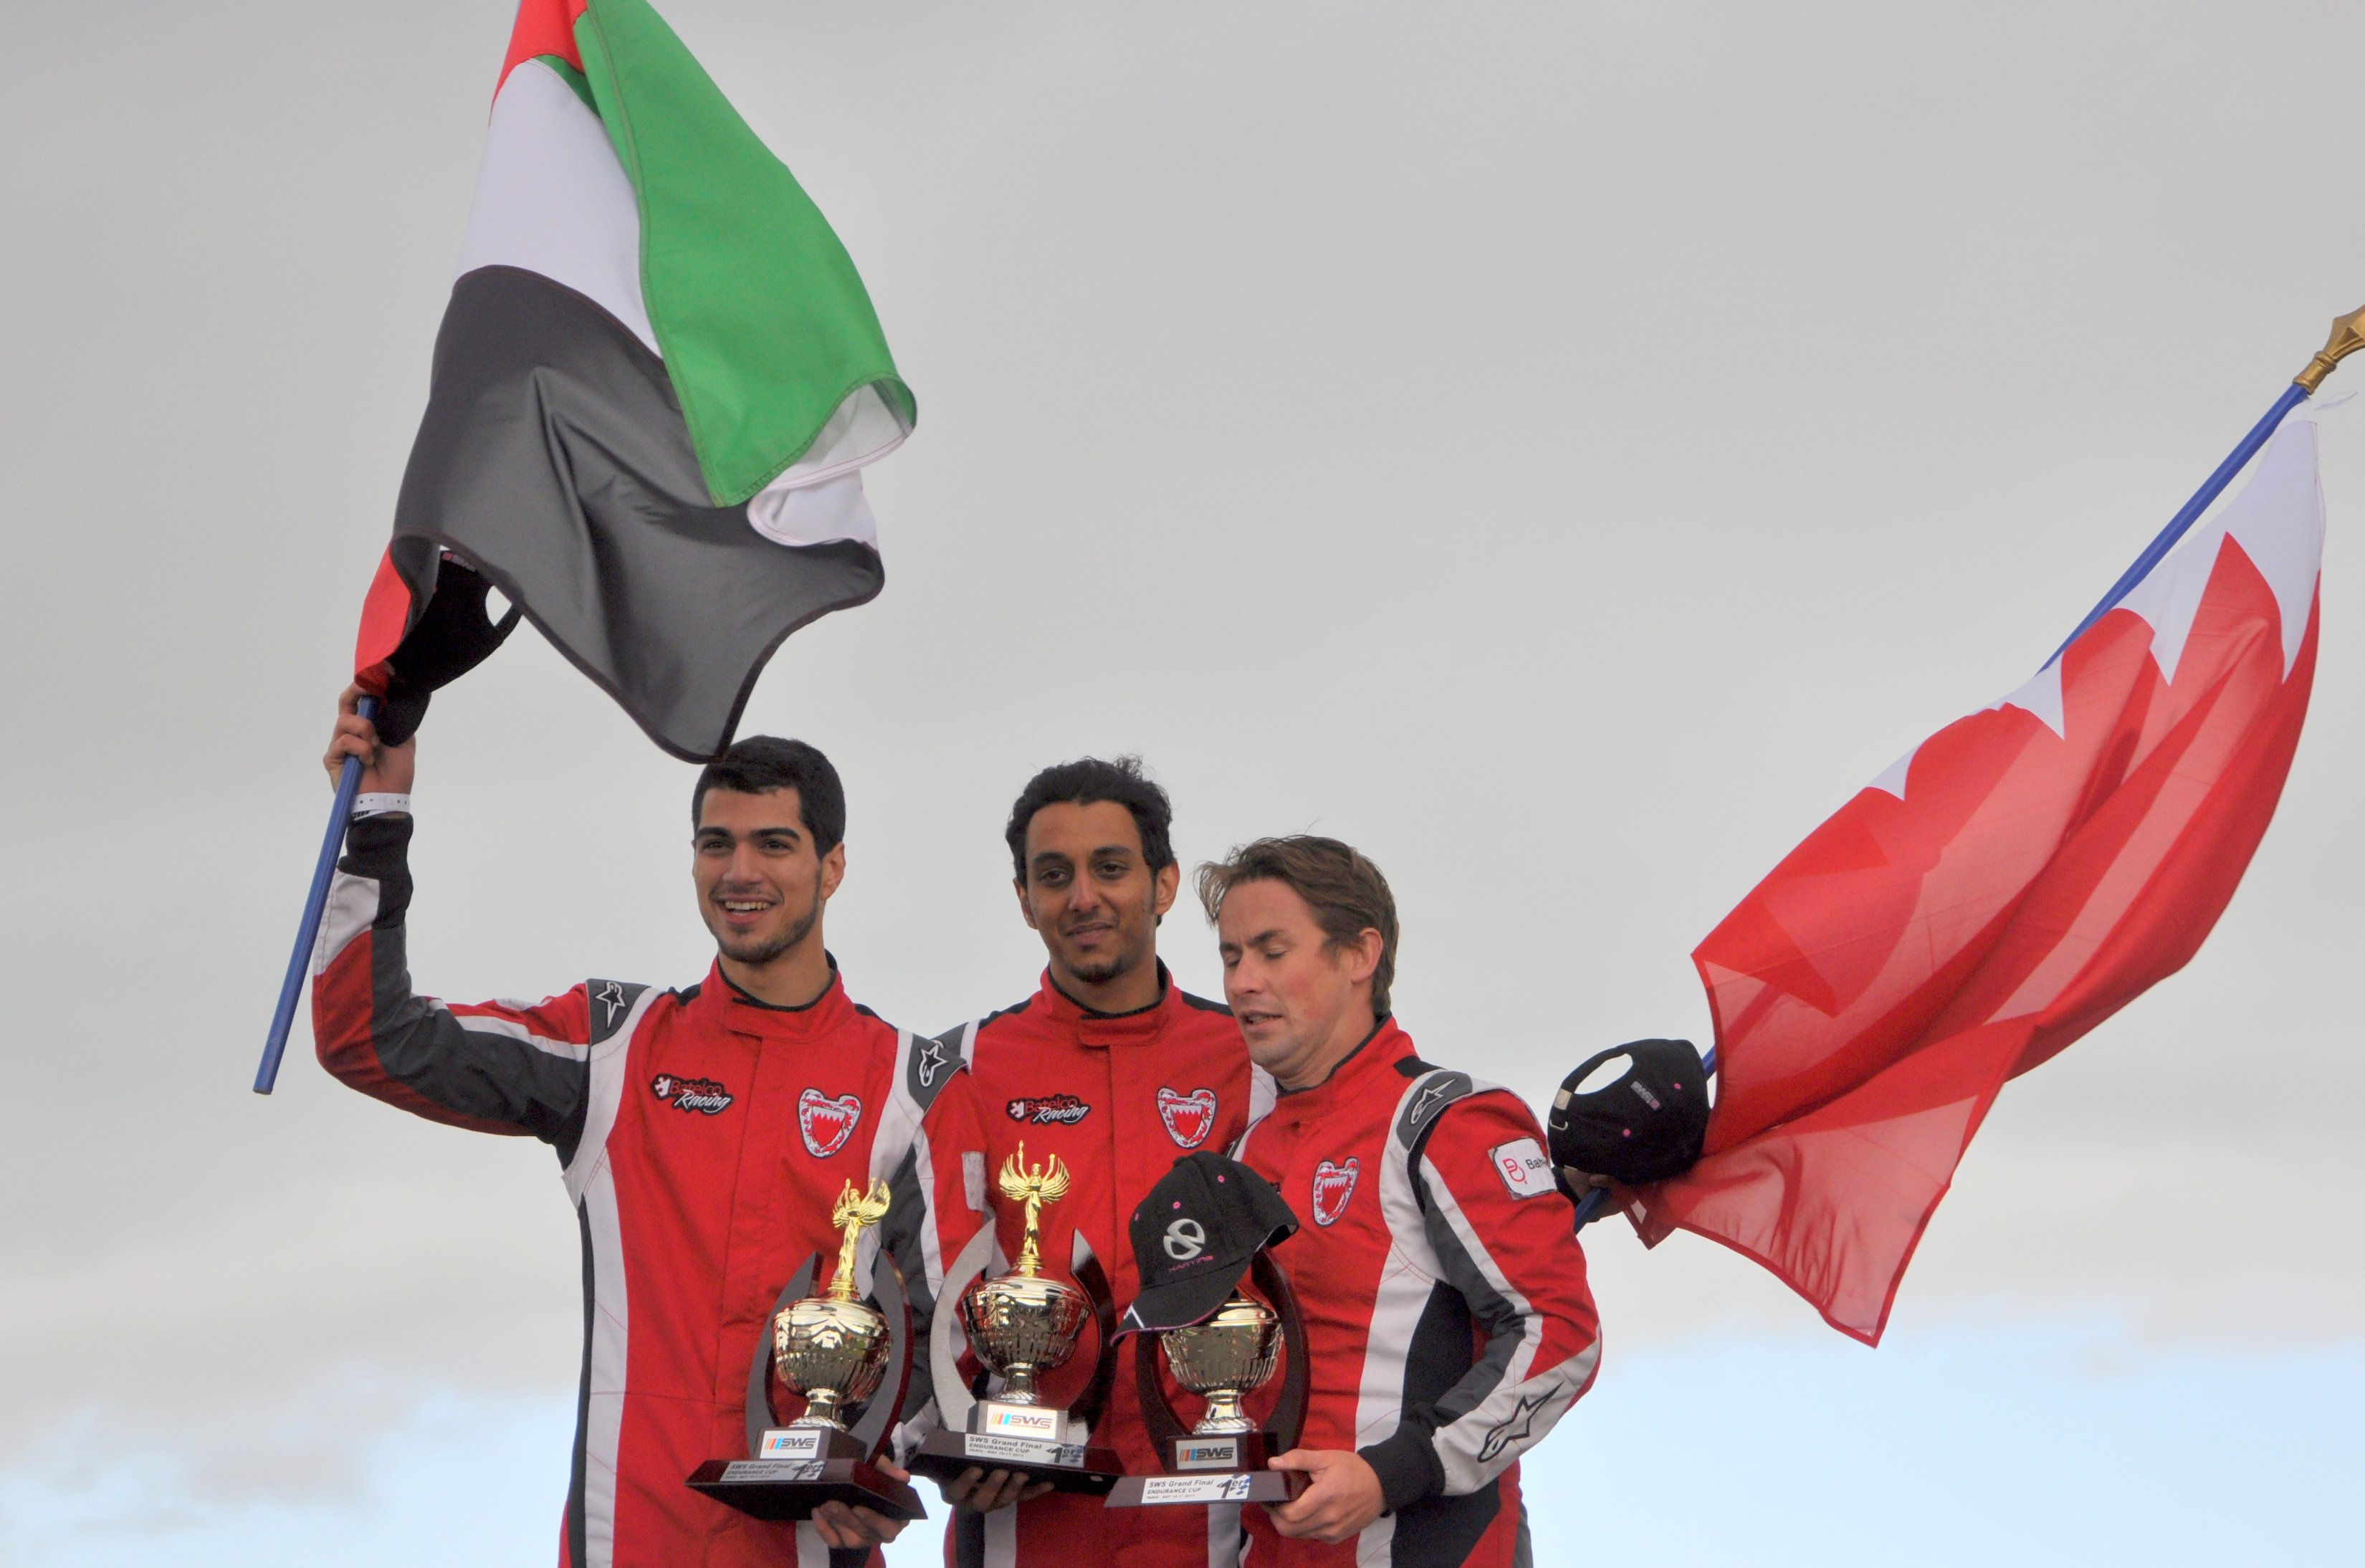 Karting: Batelco win SWS Grand Finals Endurance 12 Hours in Paris